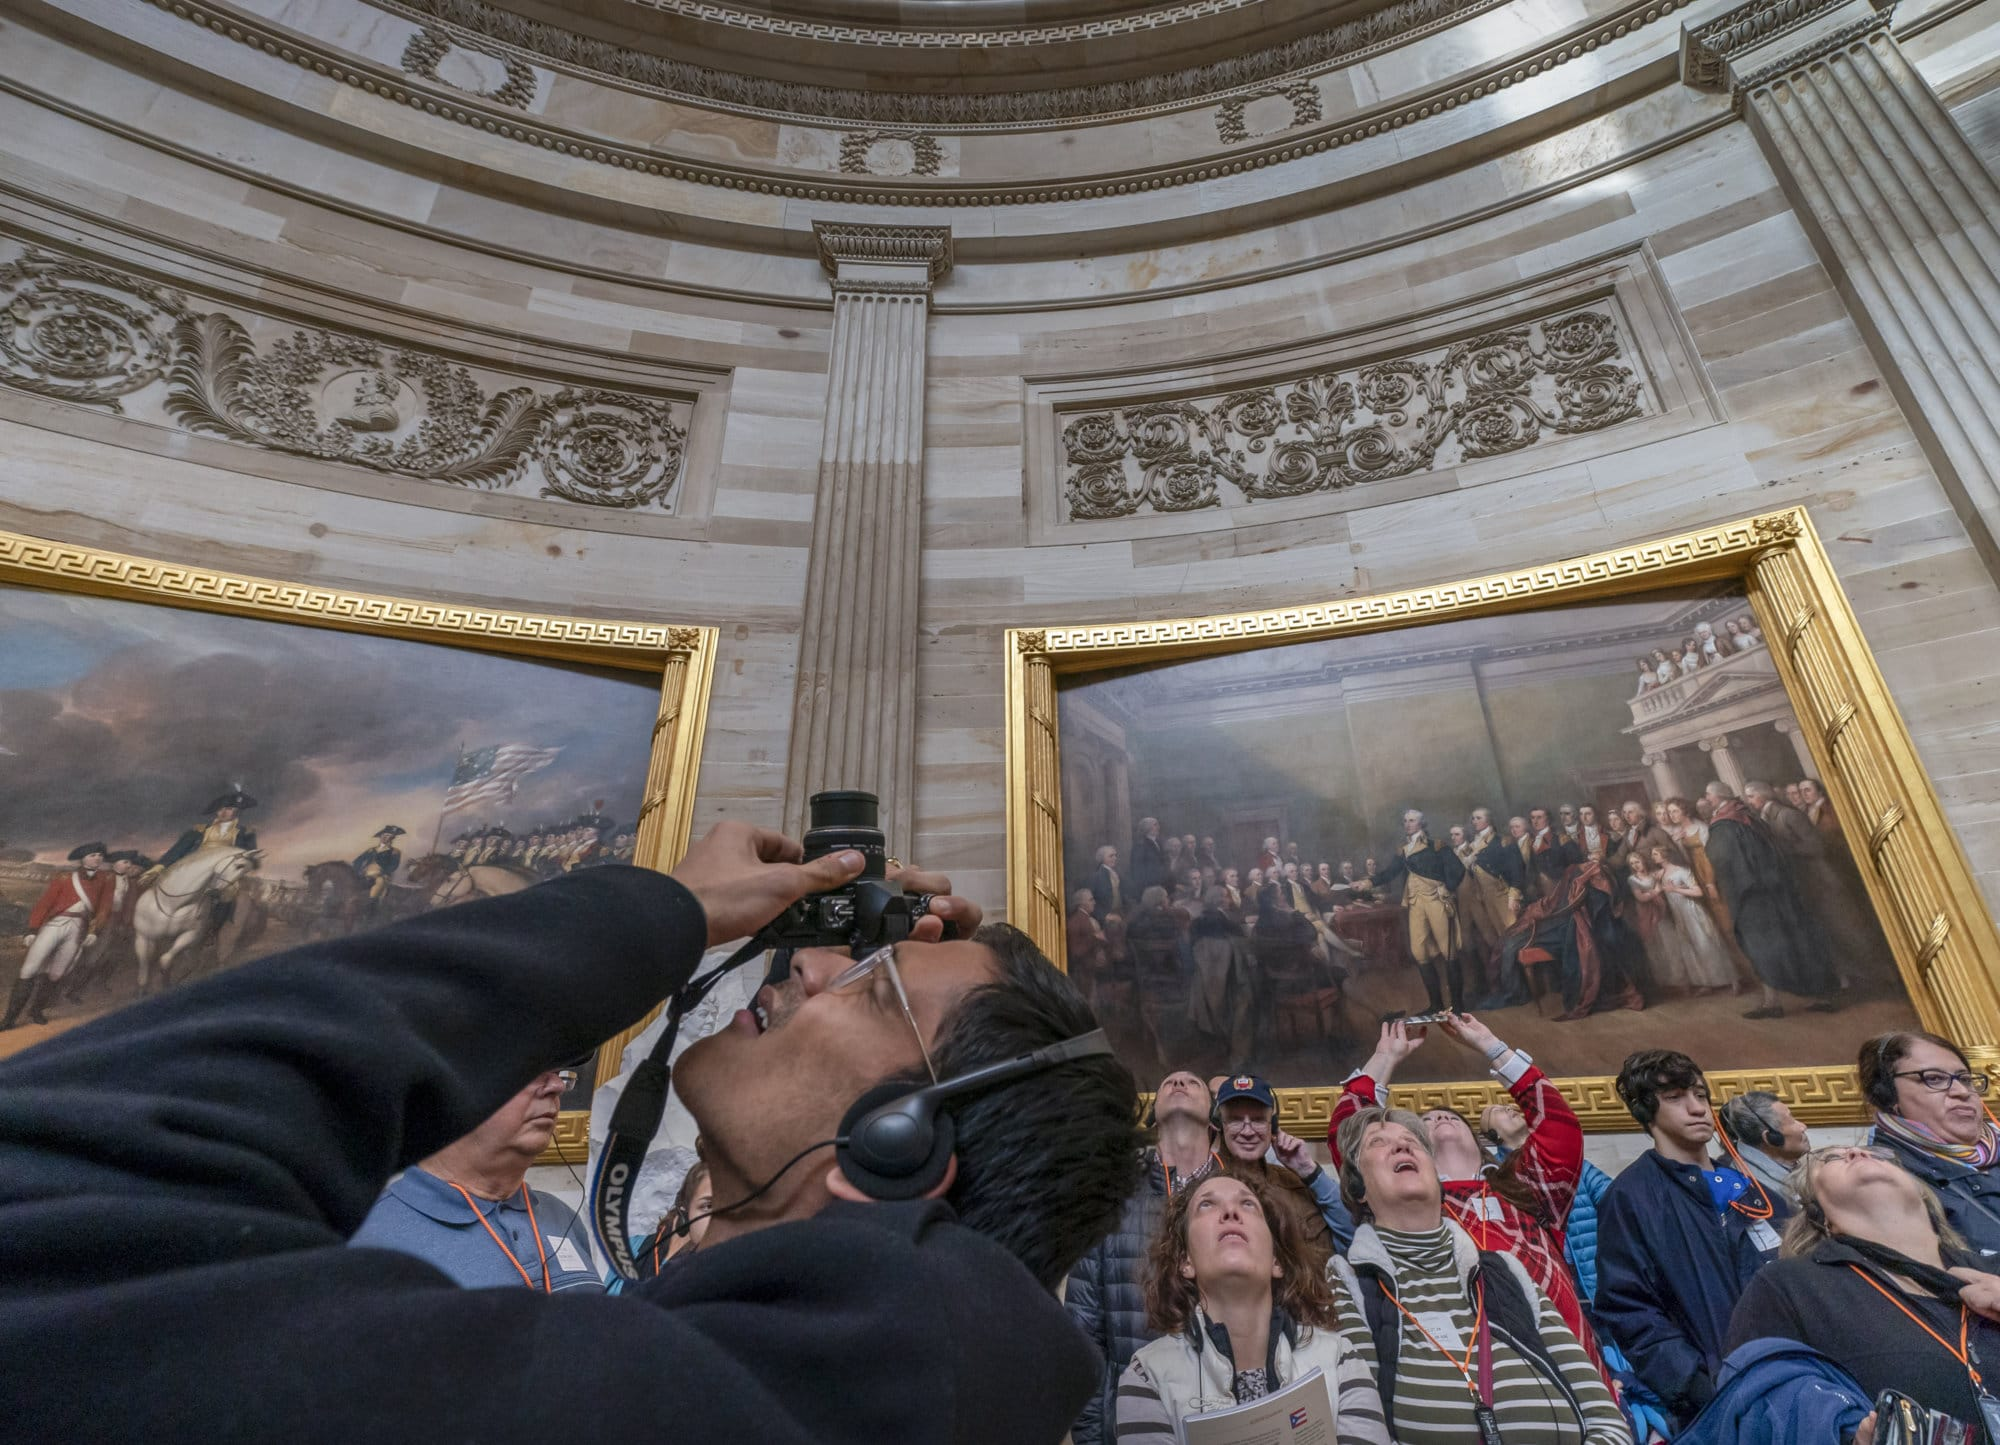 Visitors tour the Capitol Rotunda at the Capitol in Washington, Thursday, Dec. 27, 2018, during a partial government shutdown. Chances look slim for ending the partial government shutdown any time soon. Lawmakers are away from Washington for the holidays and have been told they will get 24 hours' notice before having to return for a vote. (AP Photo/J. Scott Applewhite)